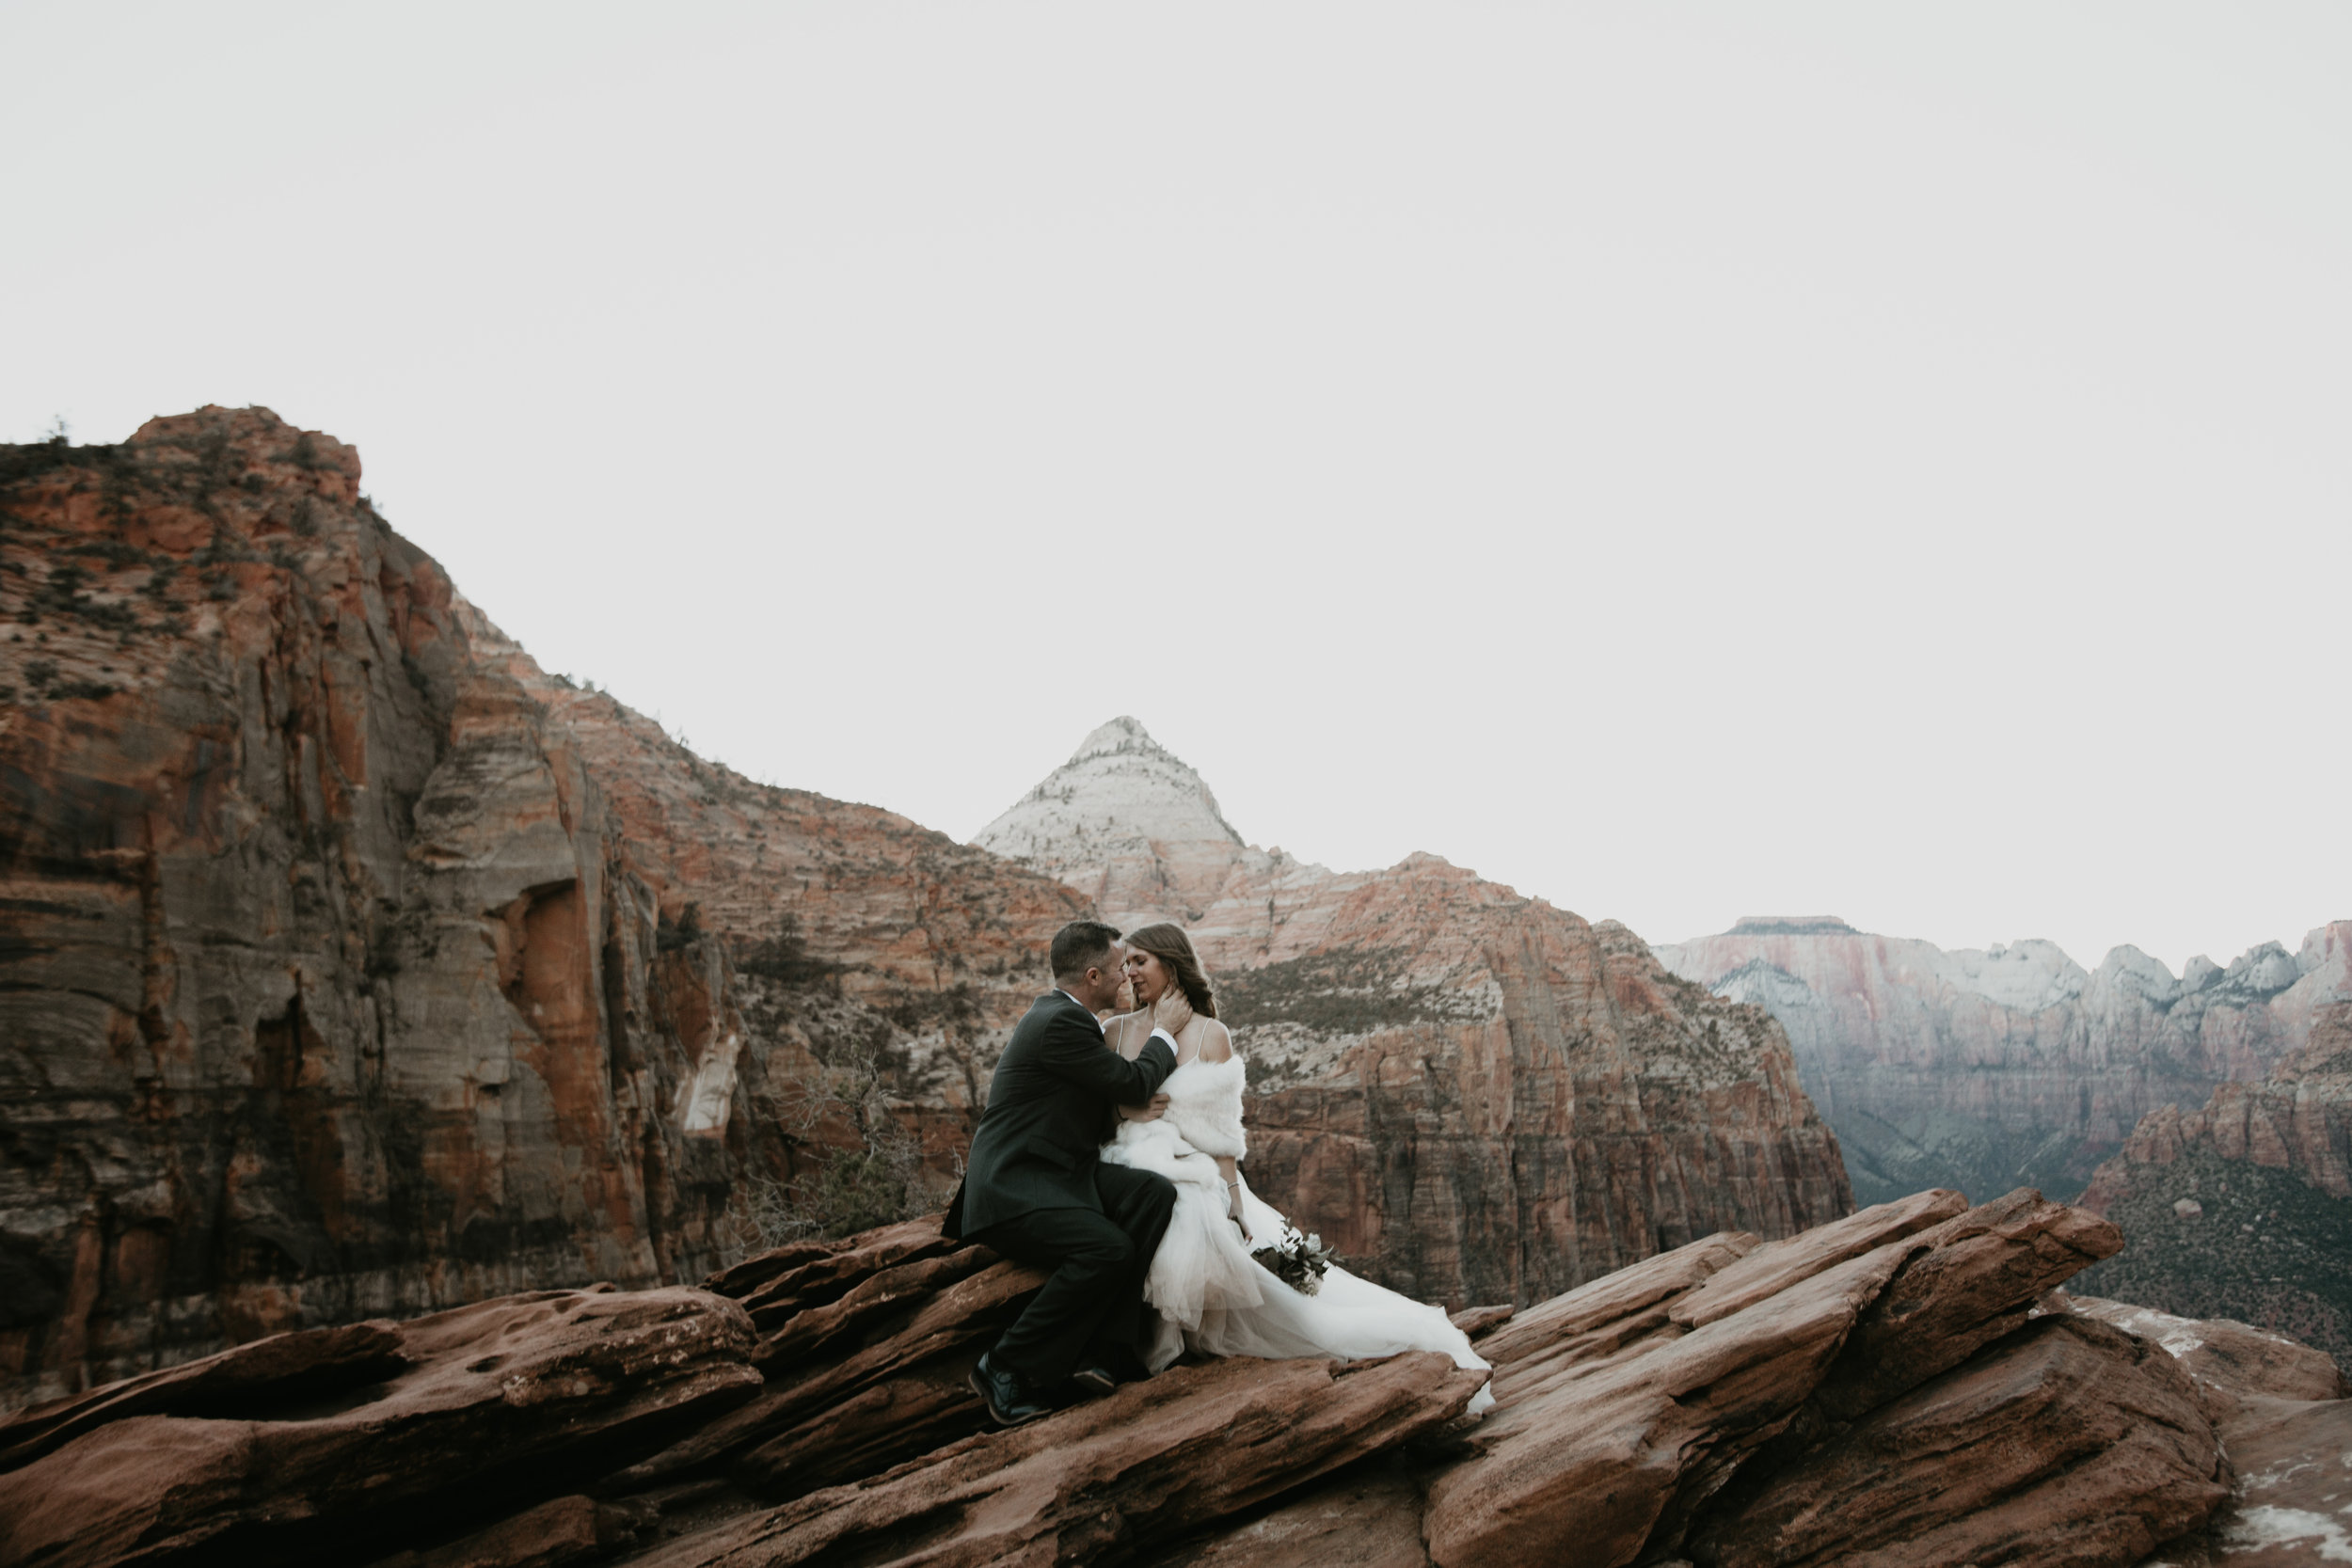 nicole-daacke-photography-zion-national-park-elopement-photographer-canyon-overlook-trail-elope-hiking-adventure-wedding-photos-fall-utah-red-rock-canyon-stgeorge-eloping-photographer-72.jpg